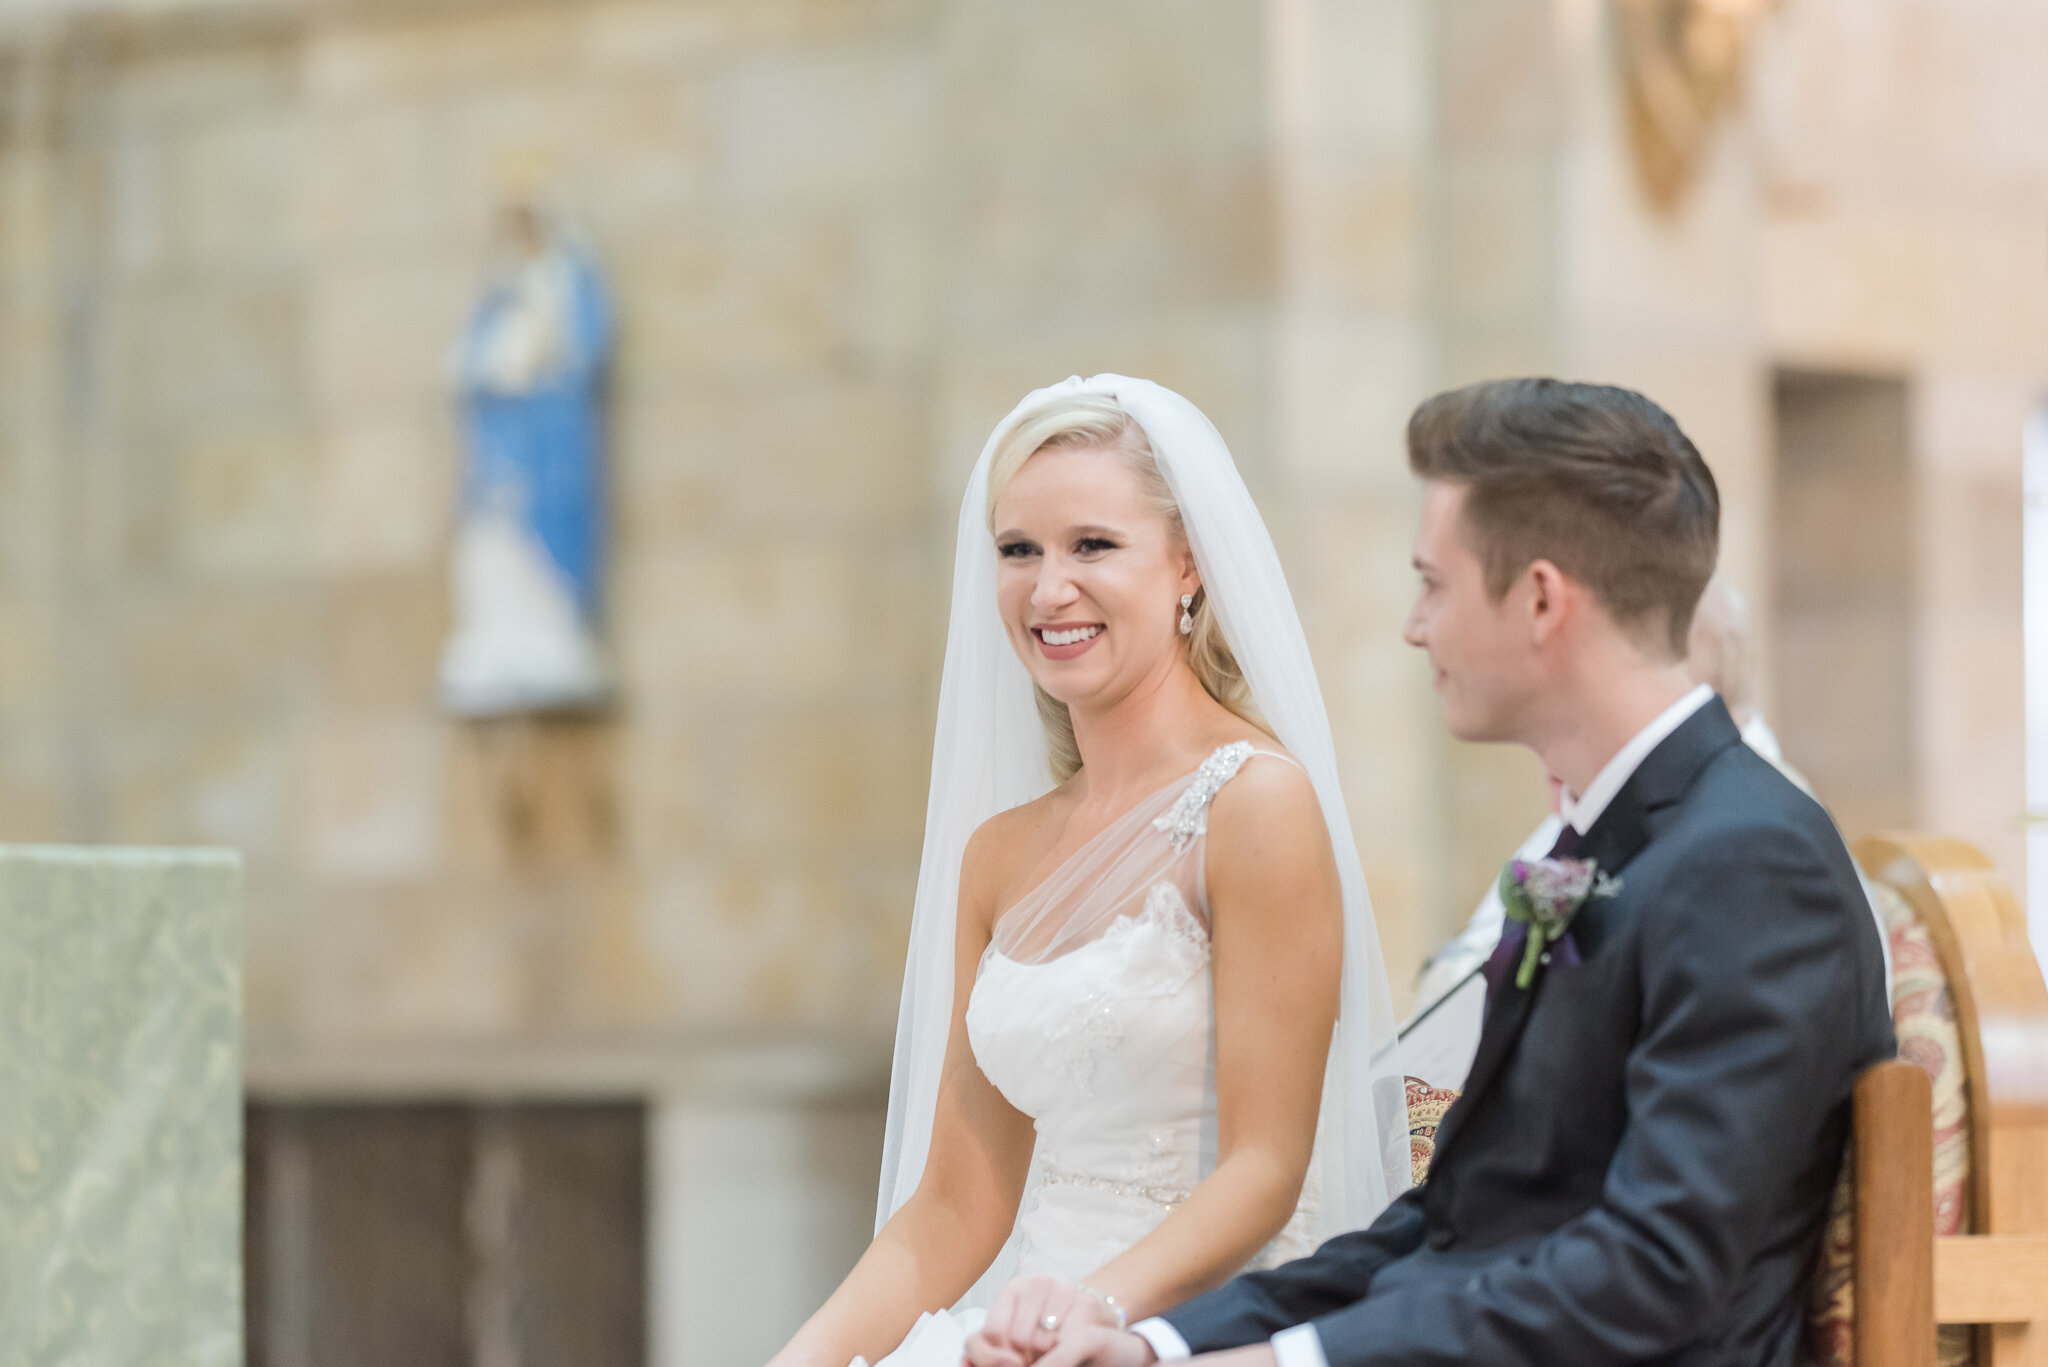 Downtown Indianapolis Wedding at Cyrus Place6706.jpg